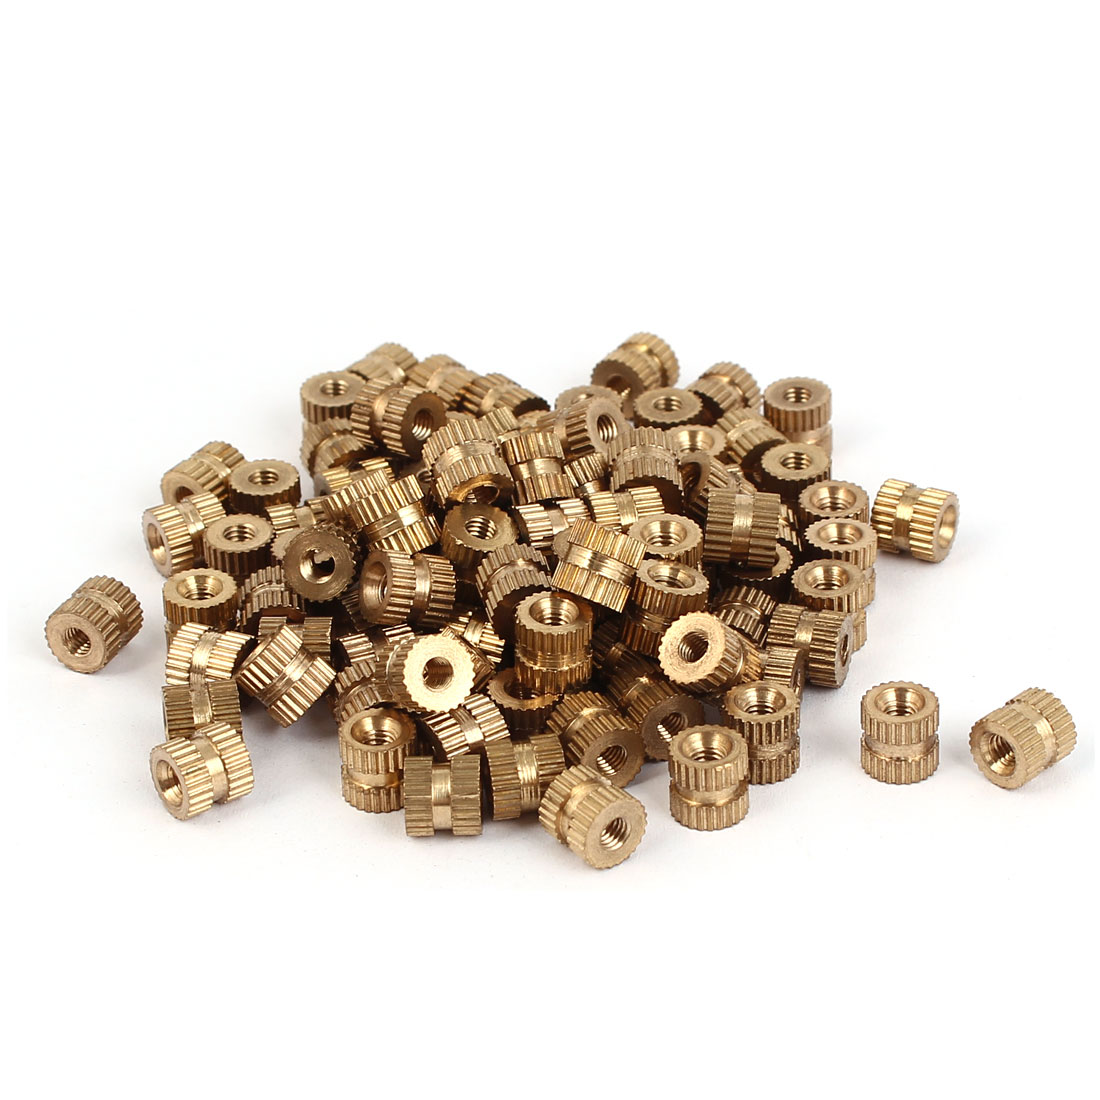 M3 x 6mm Female Thread Brass Knurled Threaded Round Insert Embedded Nuts 100PCS